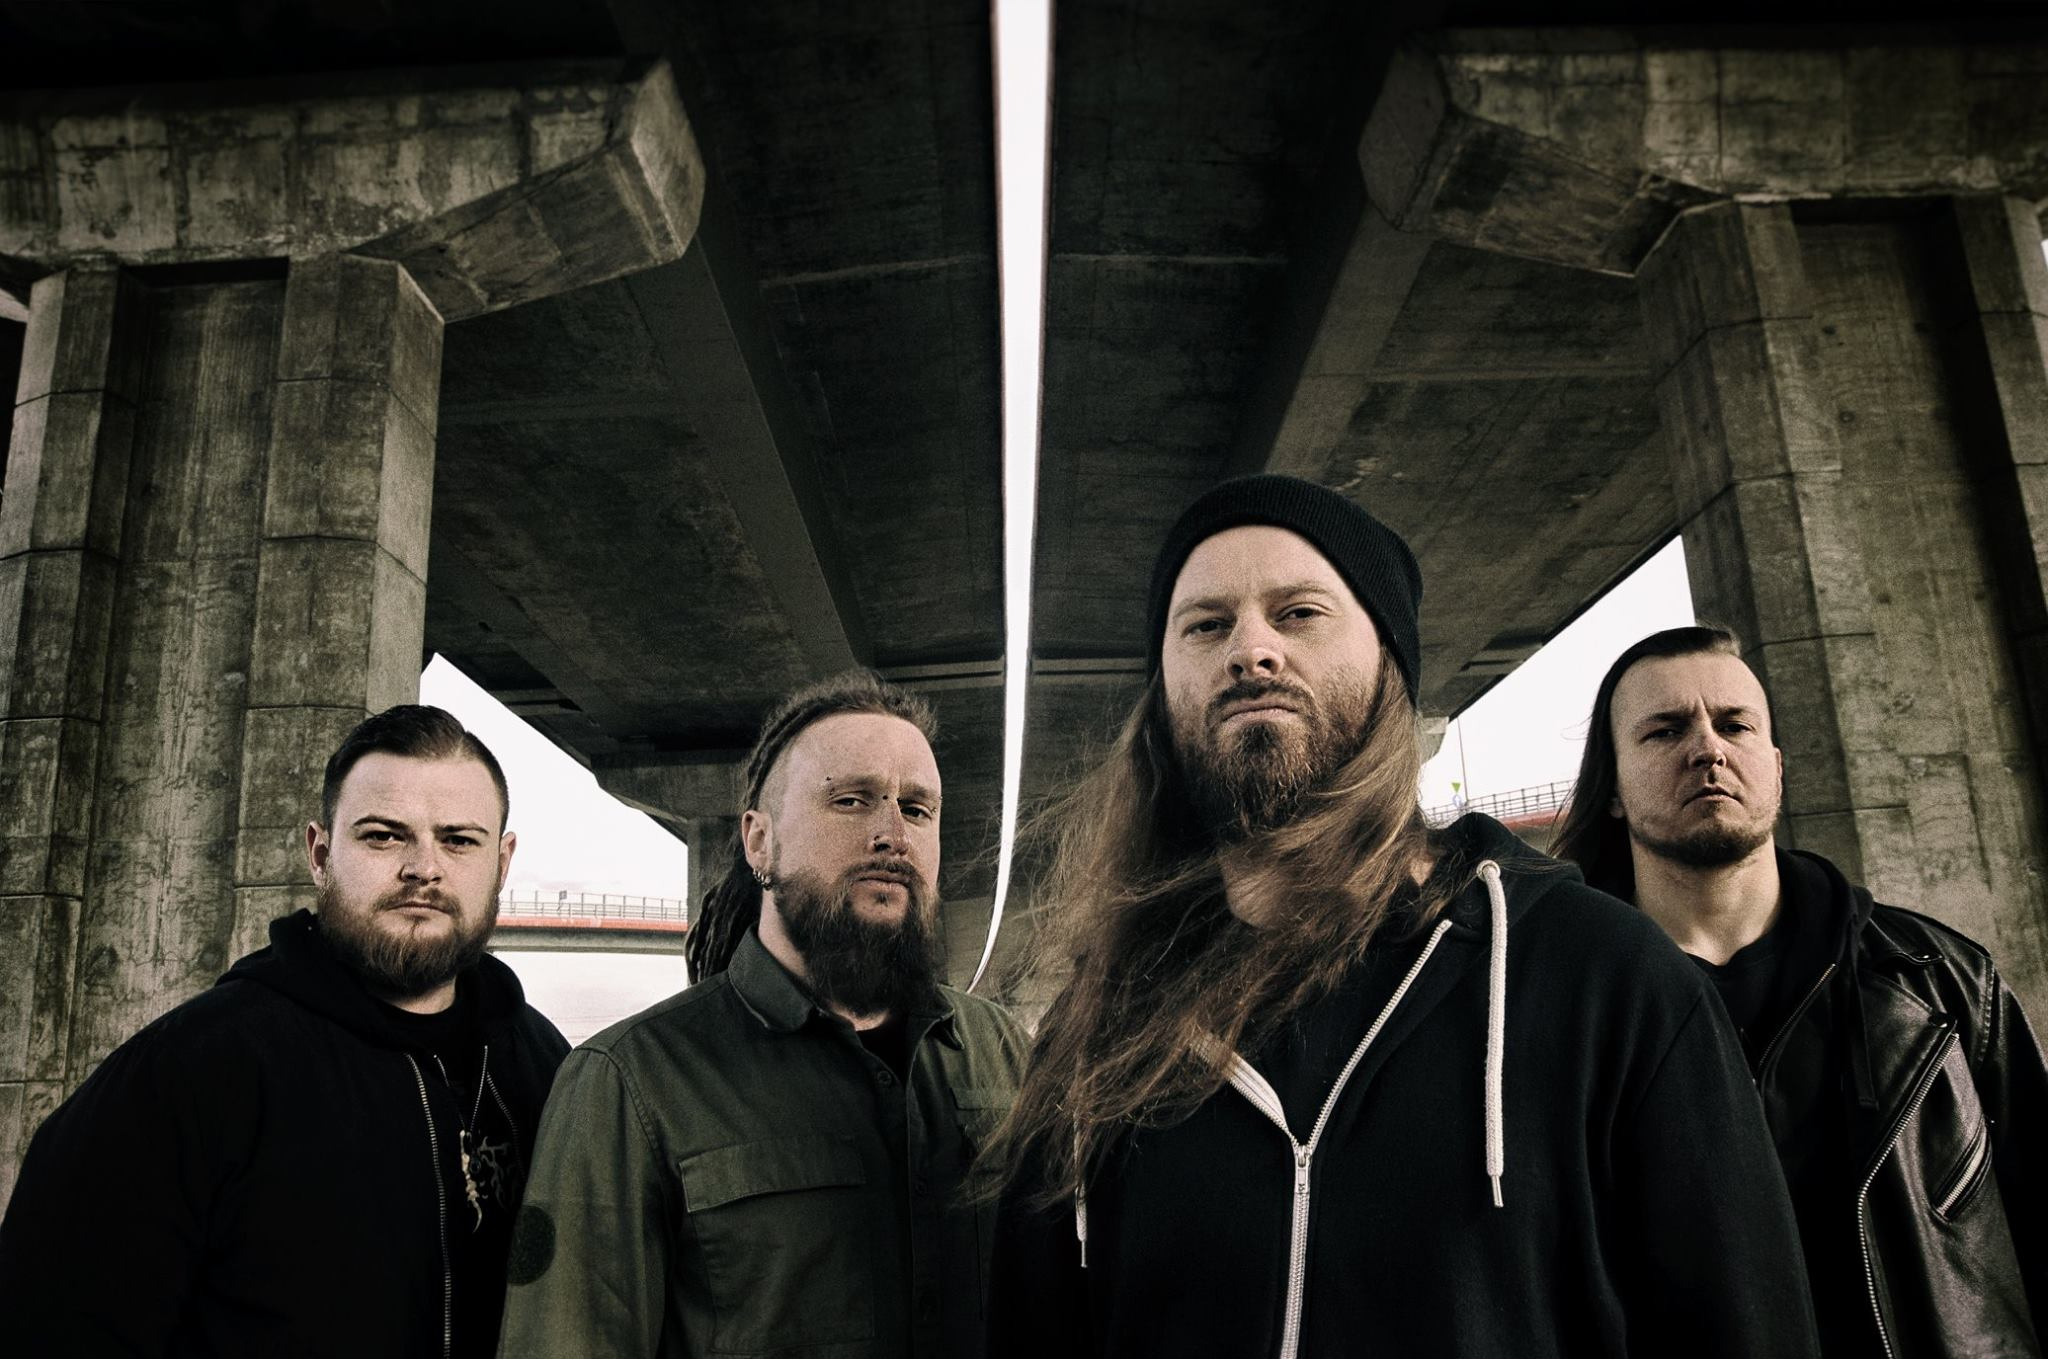 All Four DECAPITATED Members Arrested In California On Alleged Kidnapping Charges